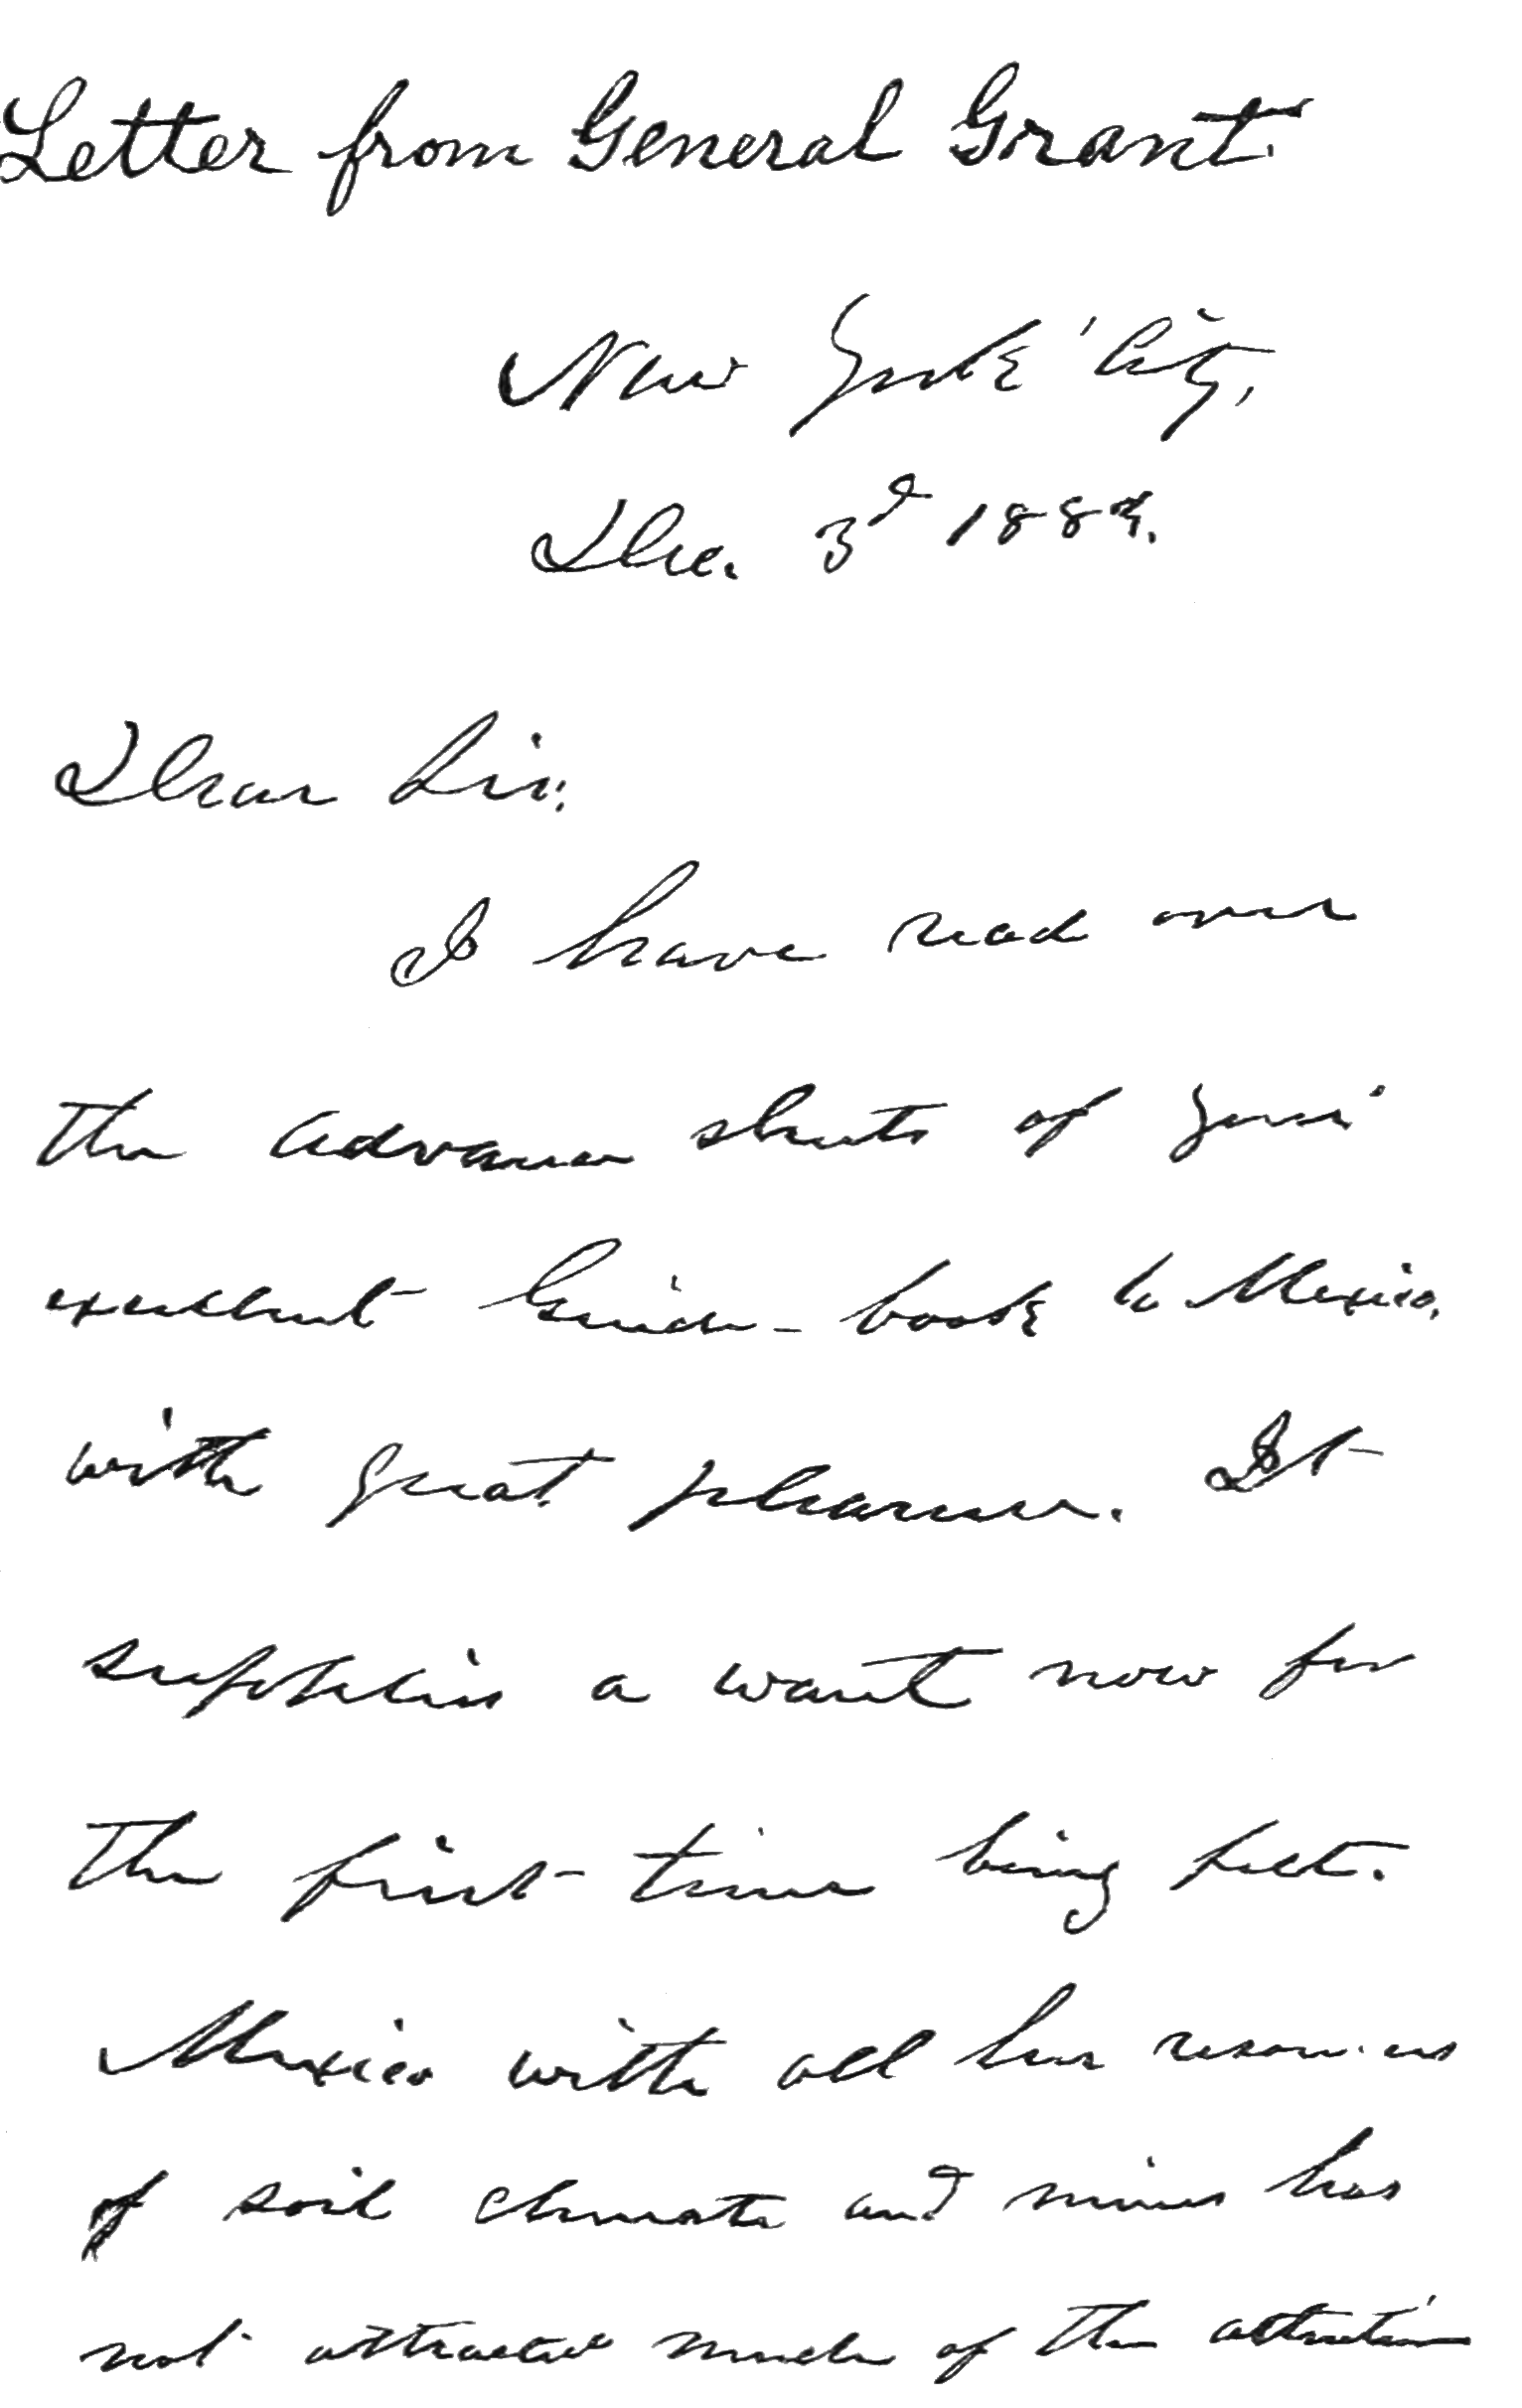 AGTM D011 Letter from General Grant Page 1.png